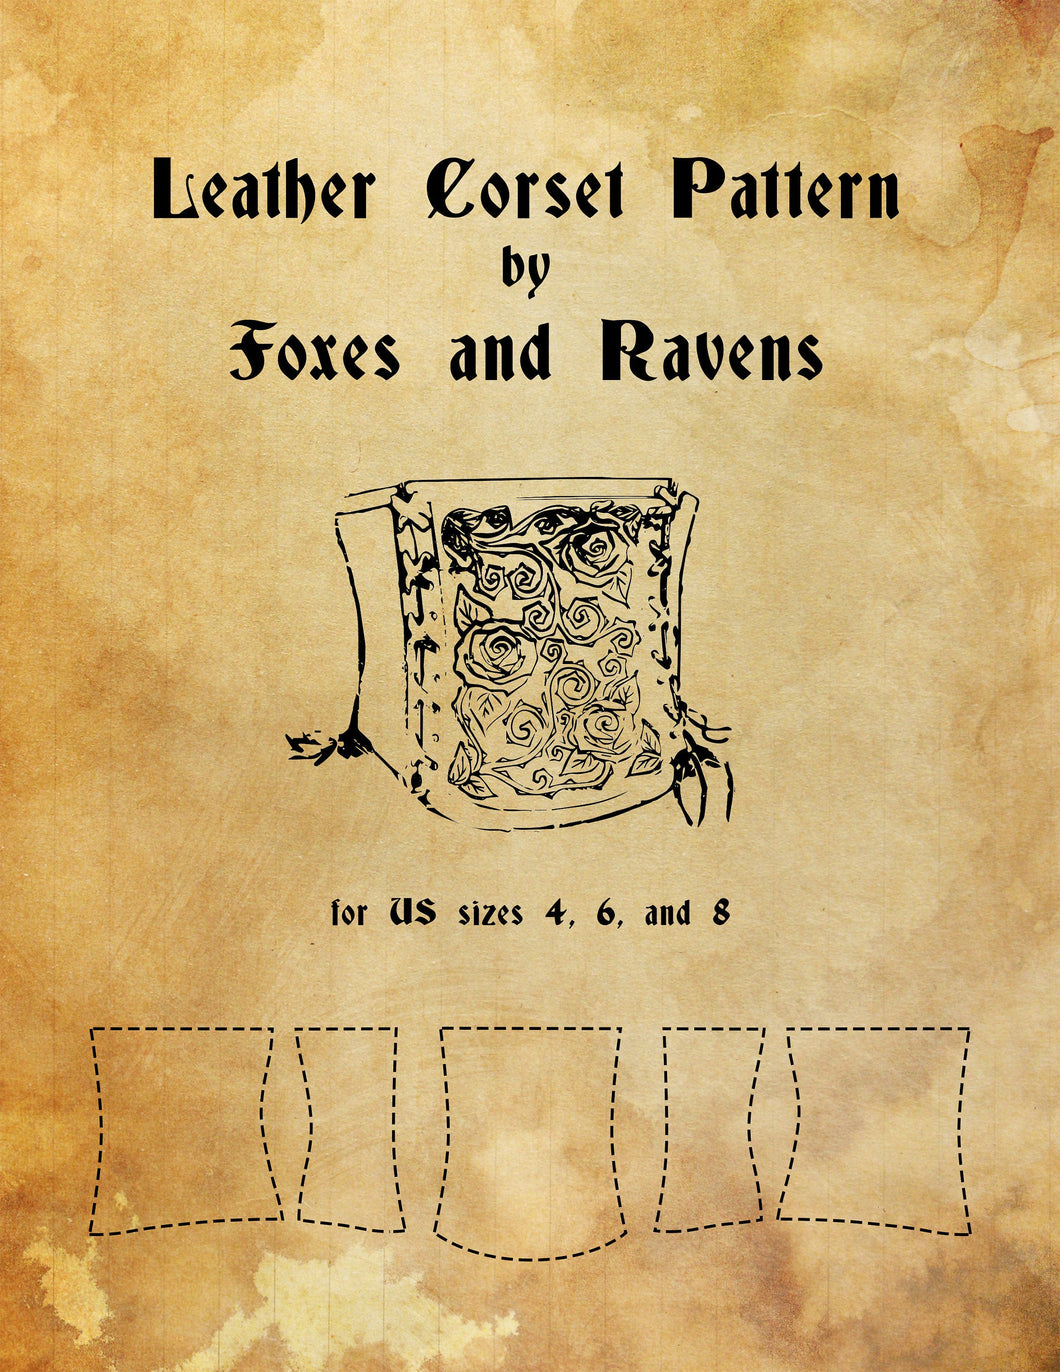 Leather Corset Pattern